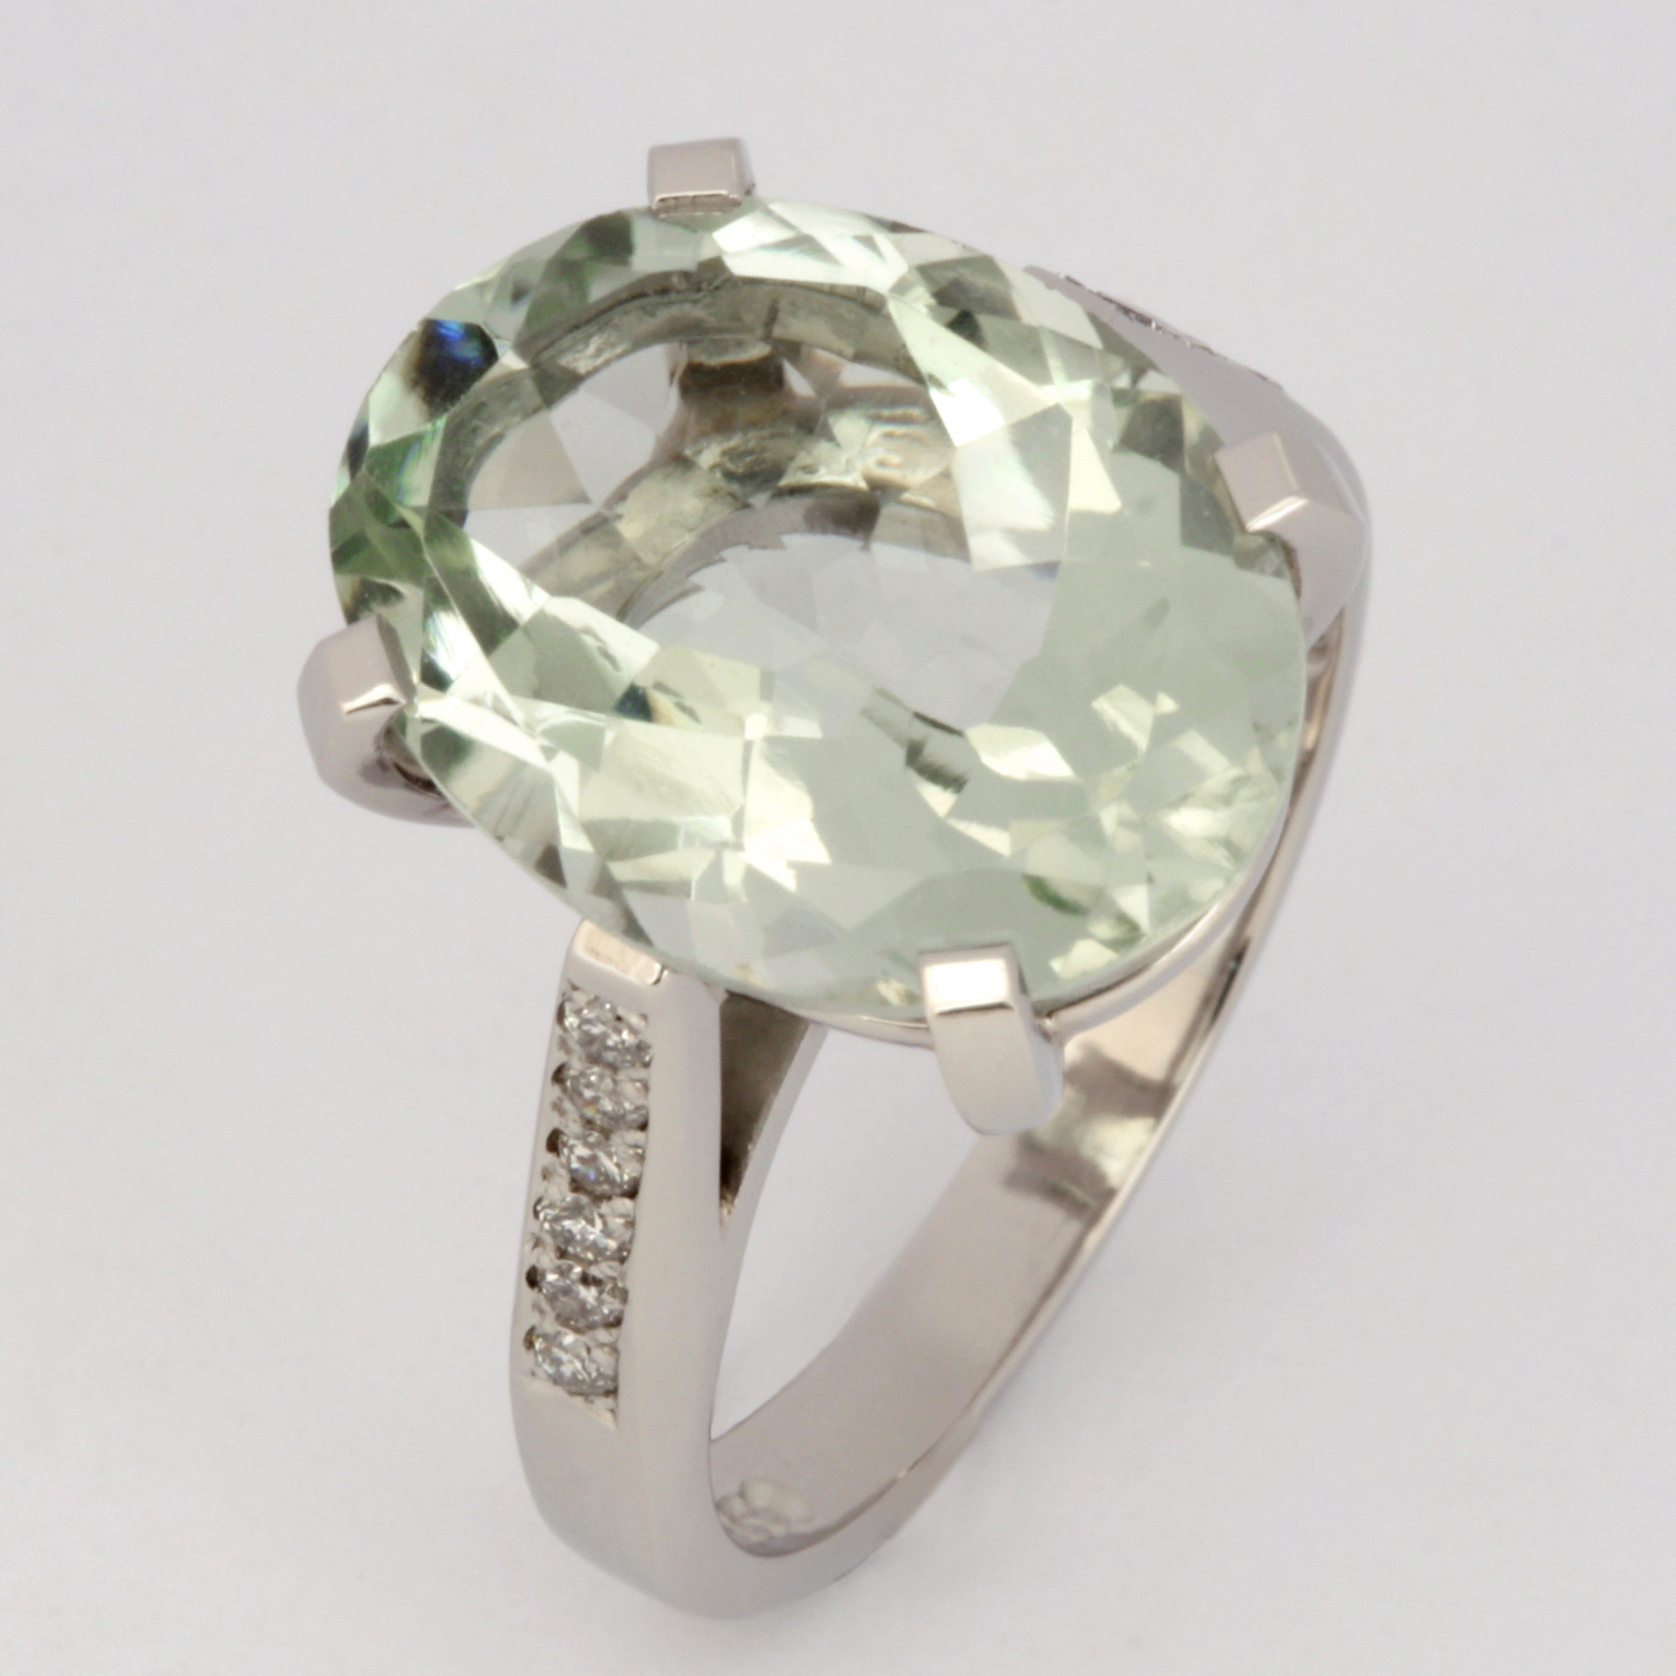 Handmade ladies palladium ring featuring a green amethyst and diamonds